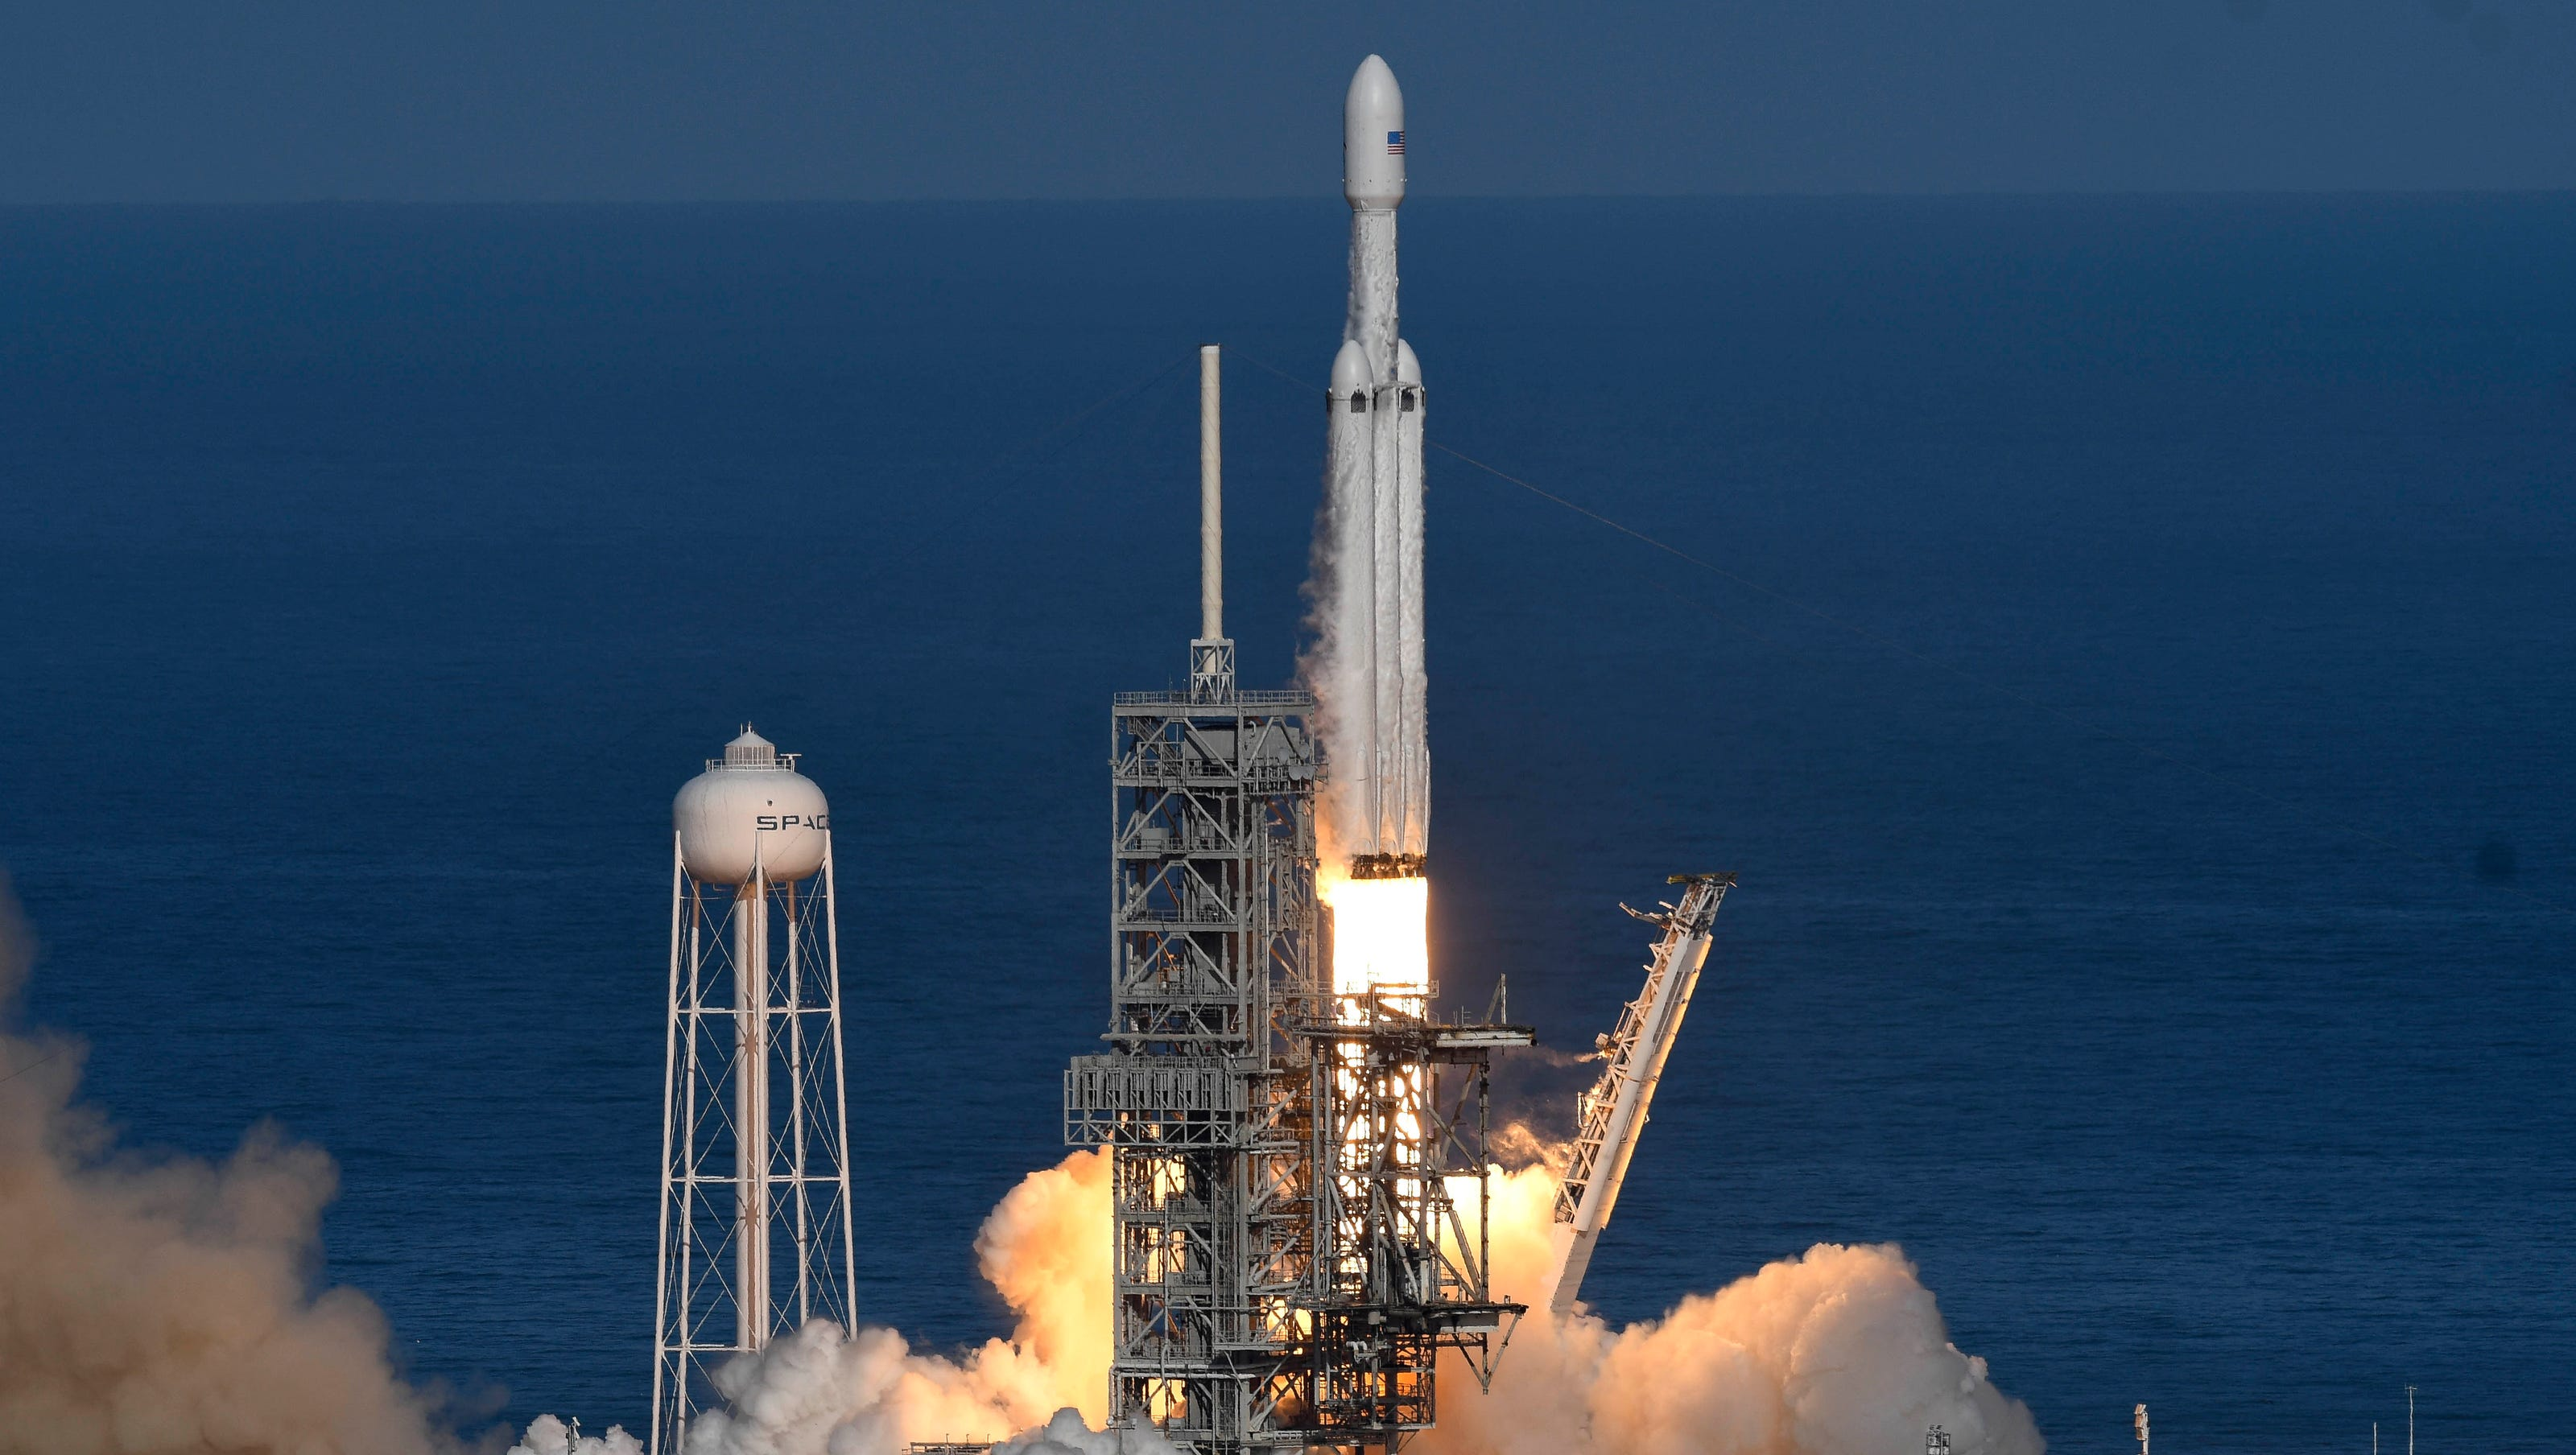 636535939981416422 fh demo launch crb020617 spacex jpg?width=3200&height=1808&fit=crop&format=pjpg&auto=webp.'